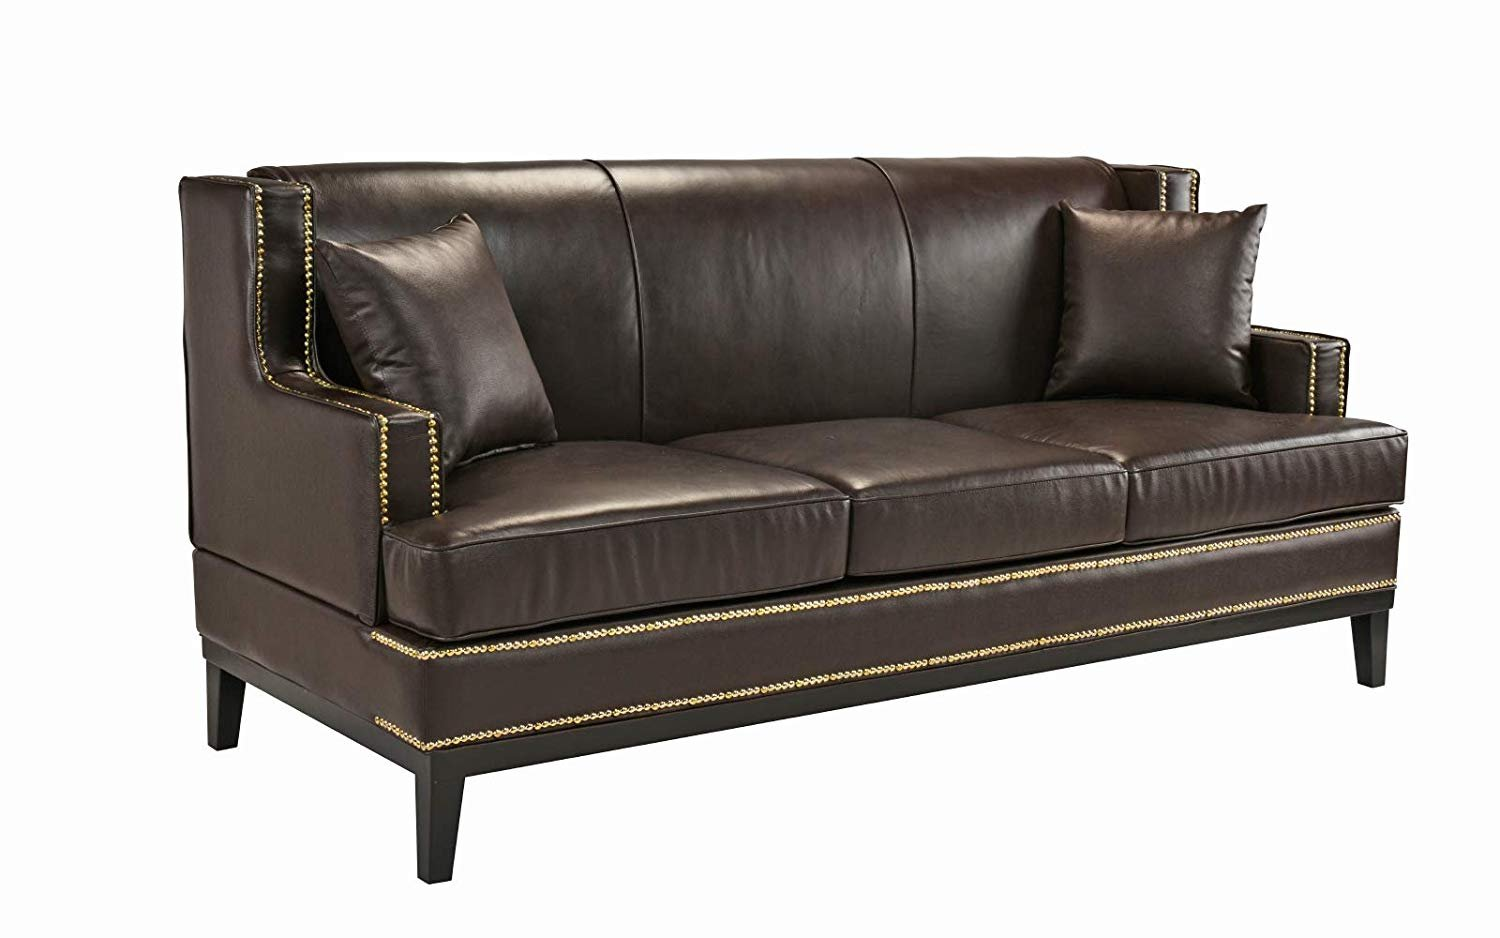 Traditional Leather Sofa Couch w/ Nailhead Trim Detail (Brown ...